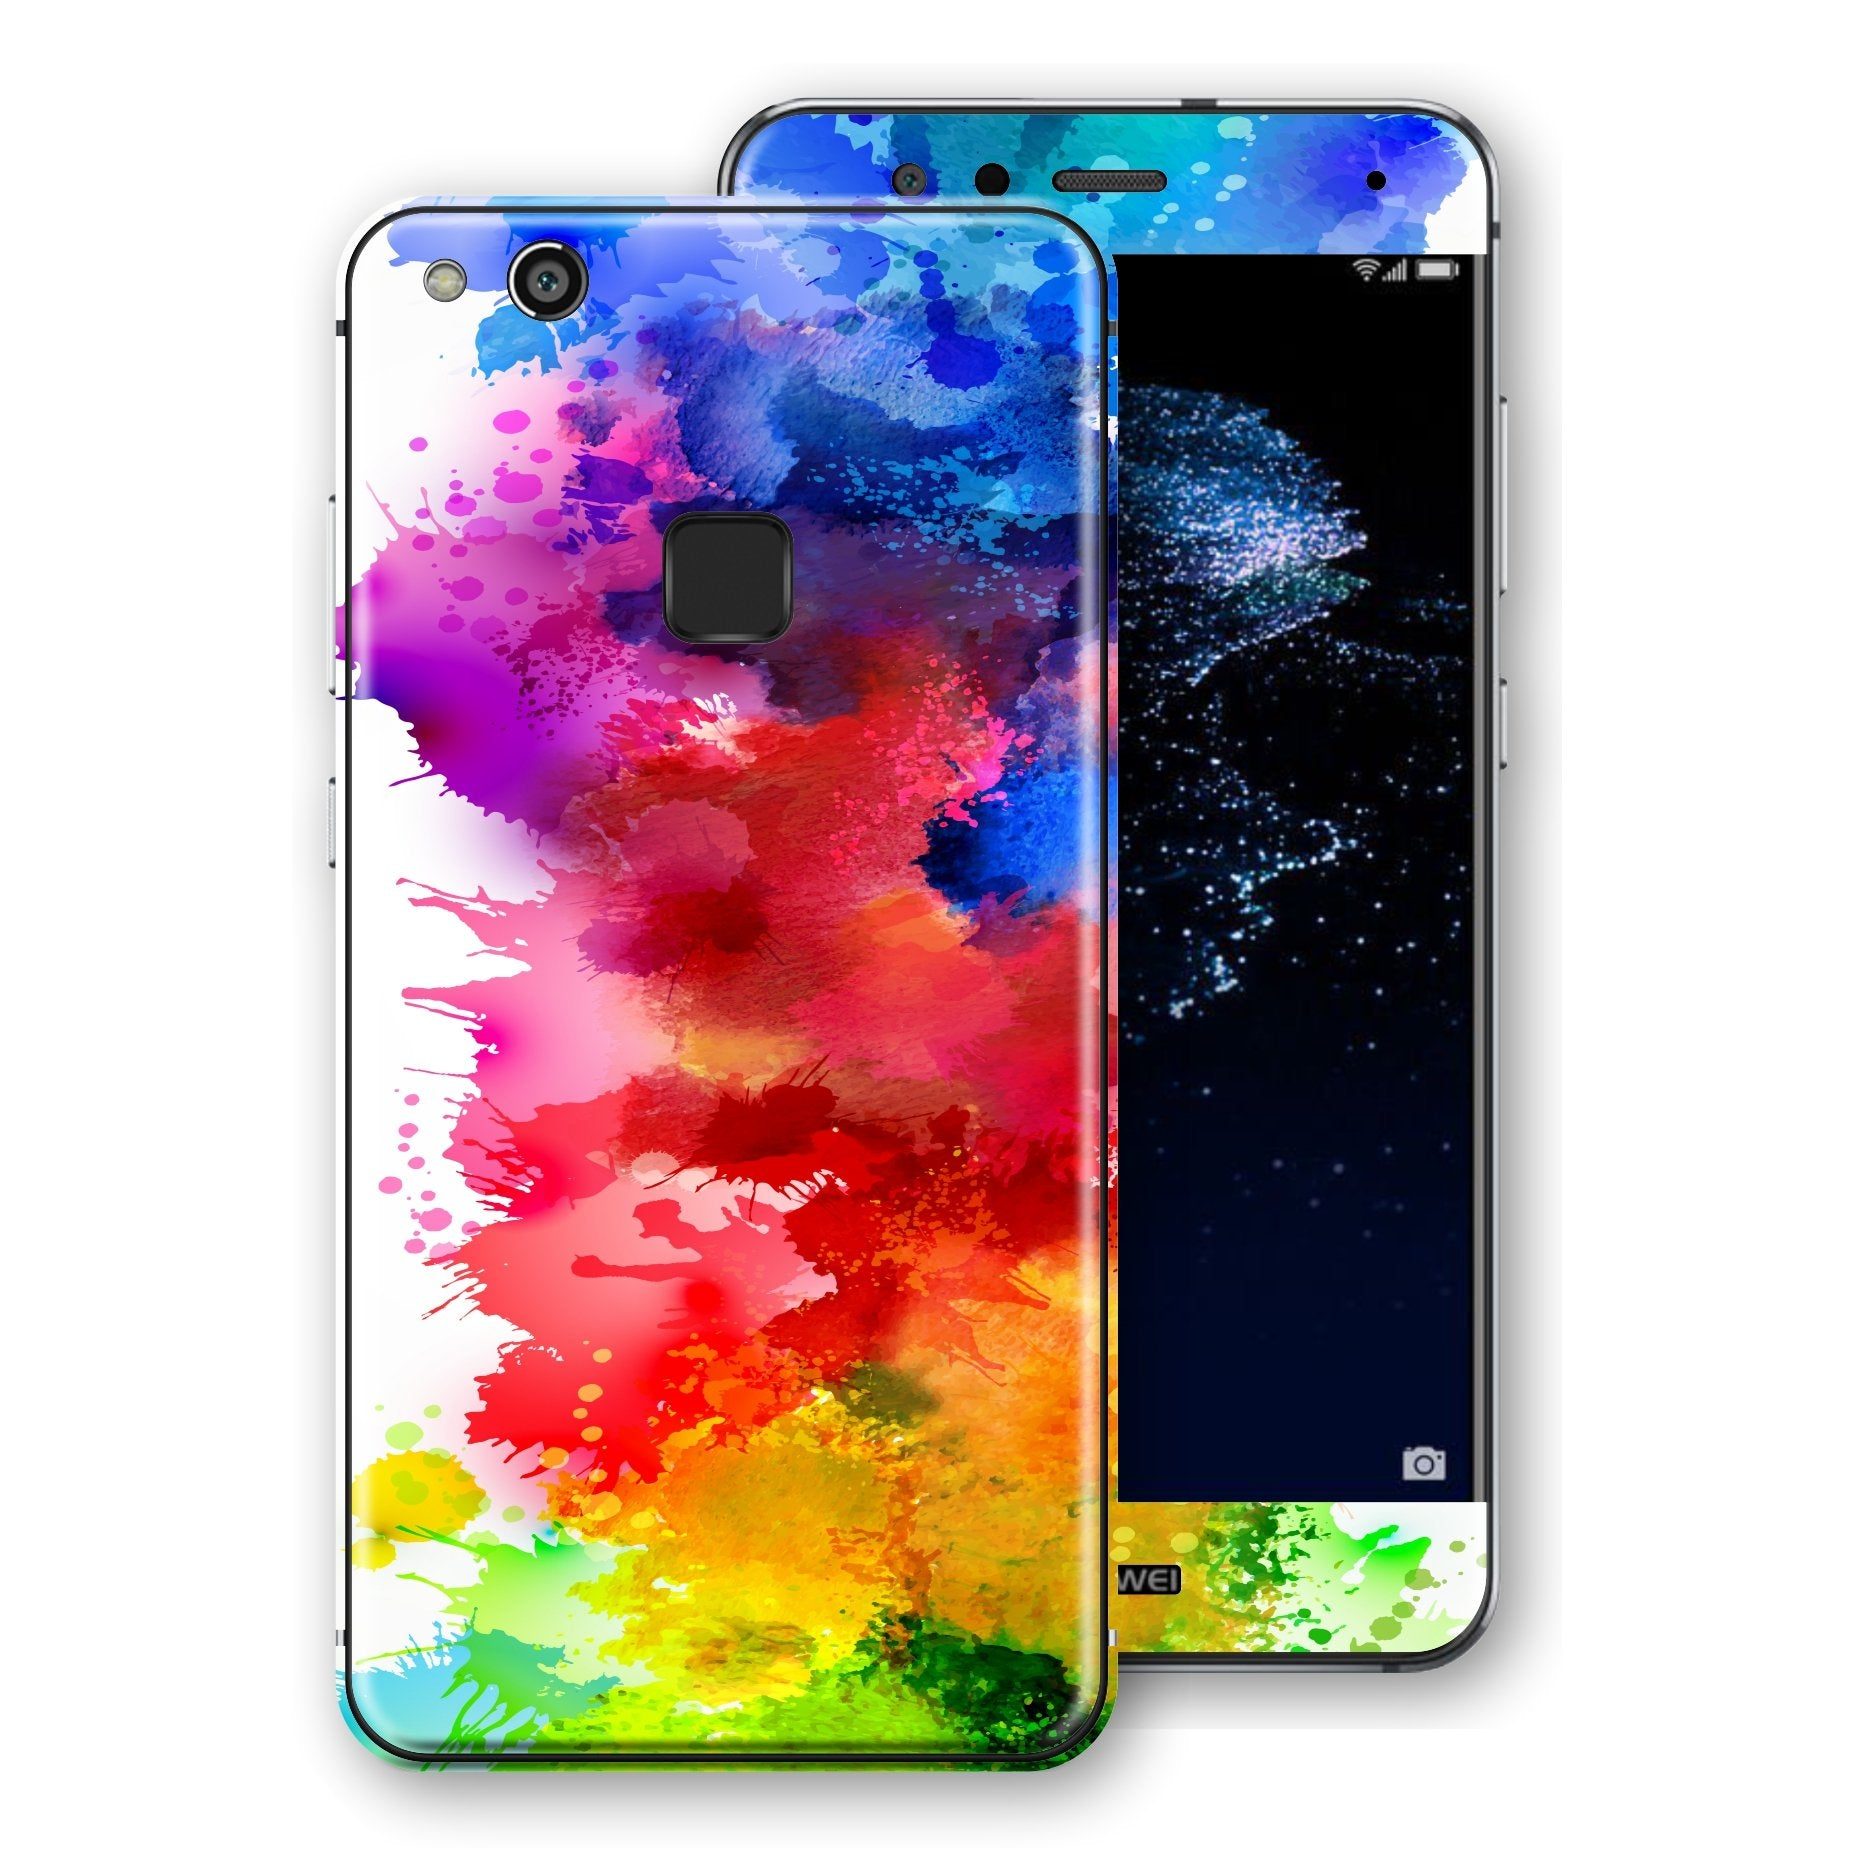 Huawei P10 LITE Signature Watercolour Skin Wrap Decal Protector | EasySkinz